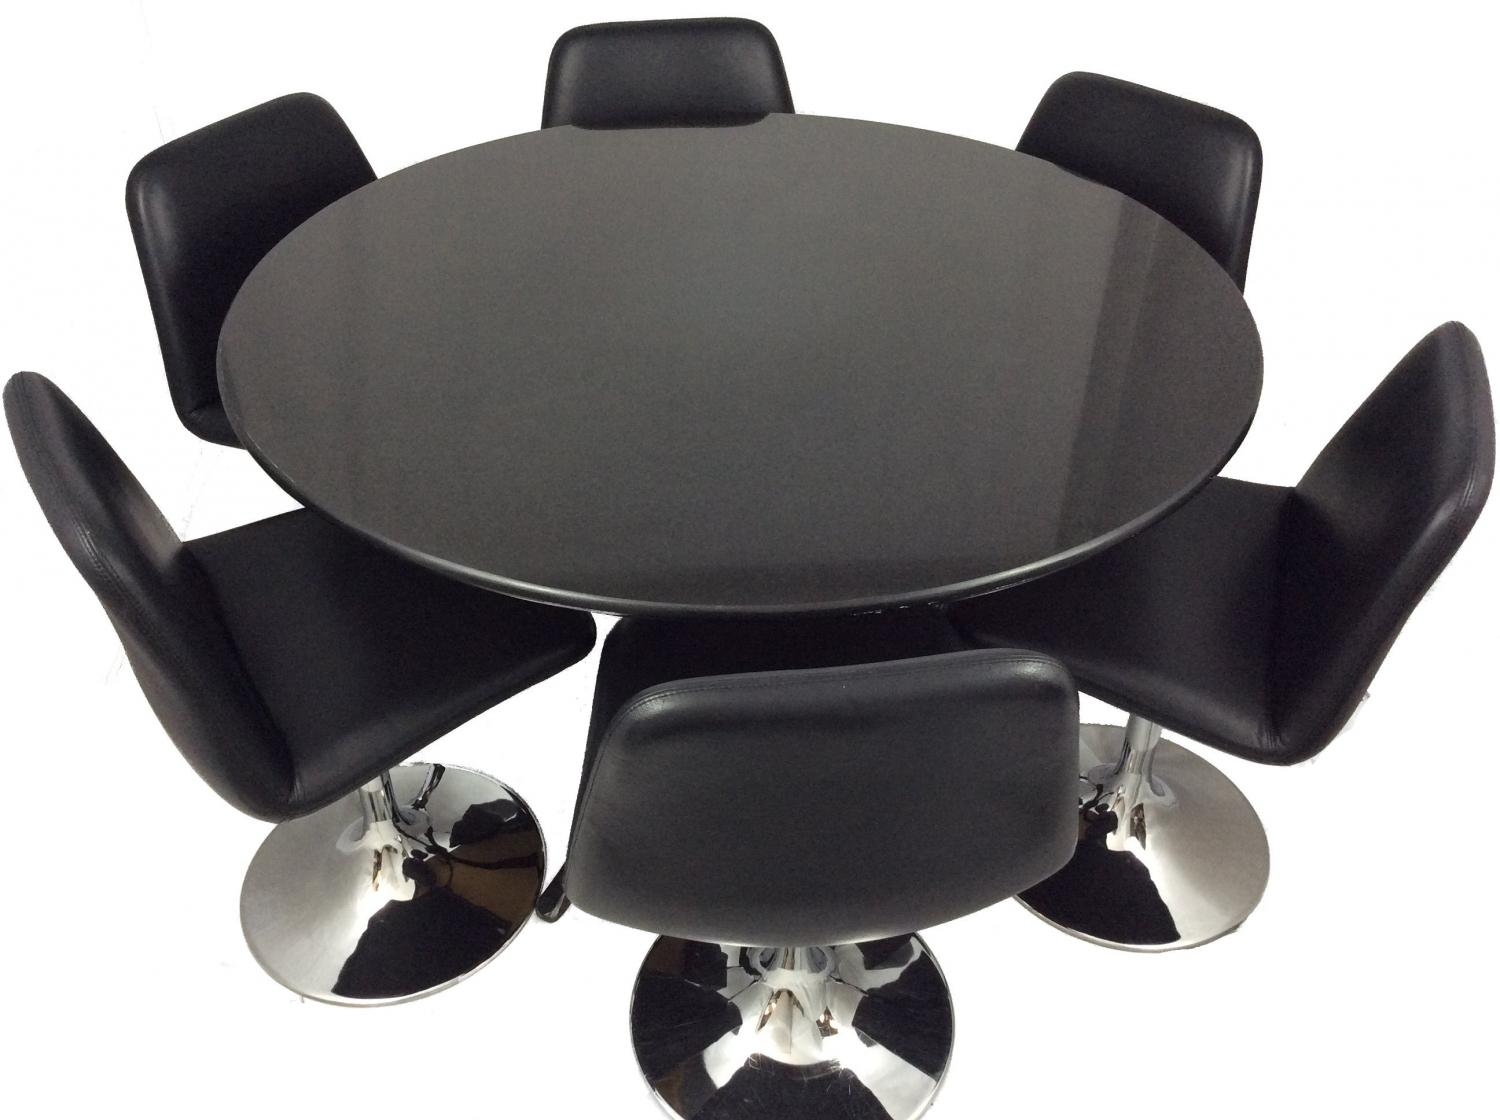 Luxury Leather Dining Chairs and Table